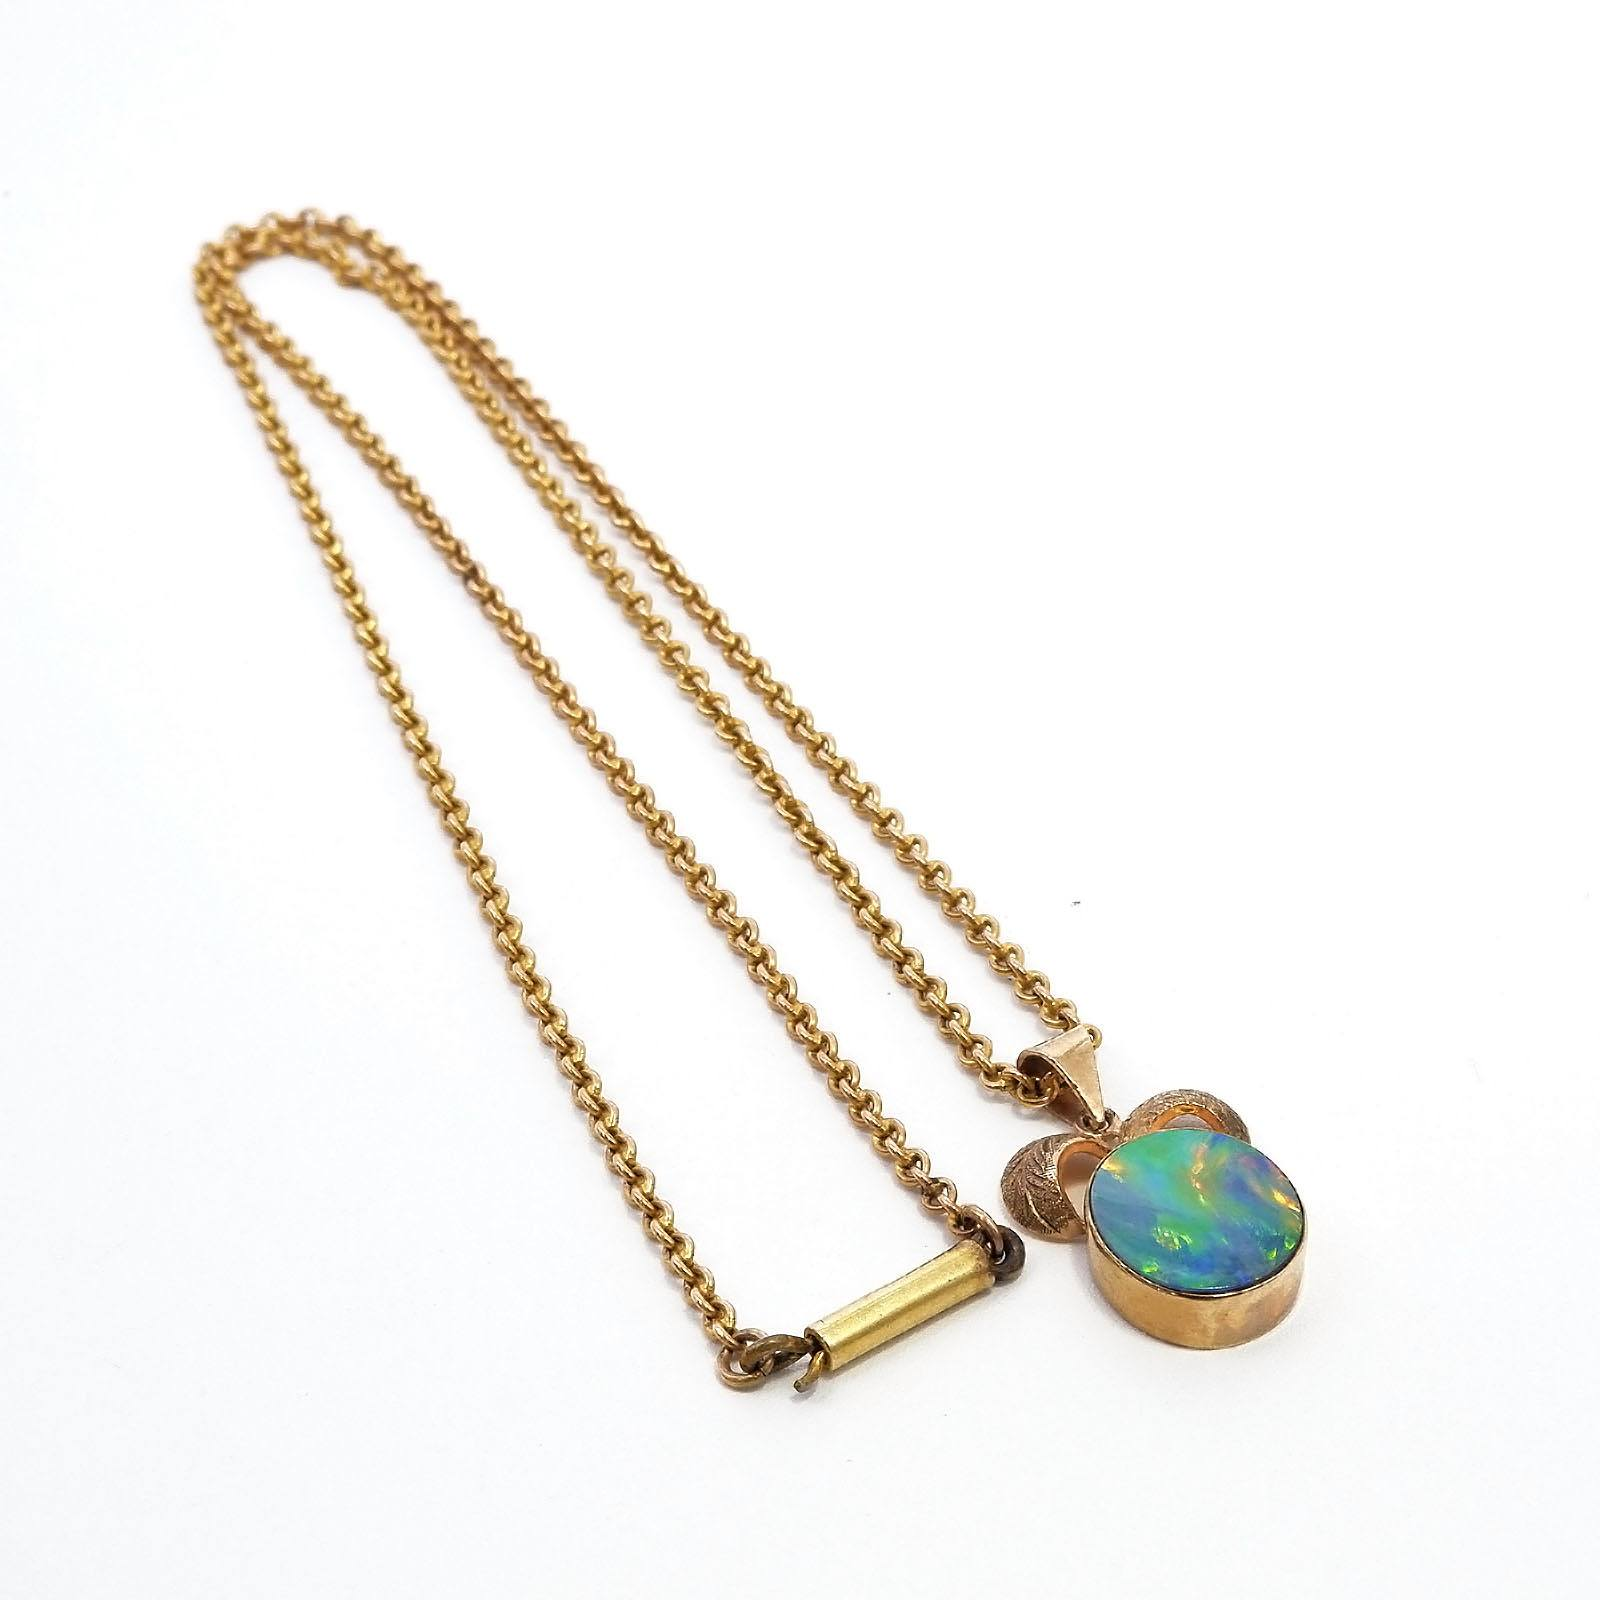 '9ct Yellow Gold Pendant with Oval Opal Doublet in a Bezel Setting on a Curb Chain, 5.4g'